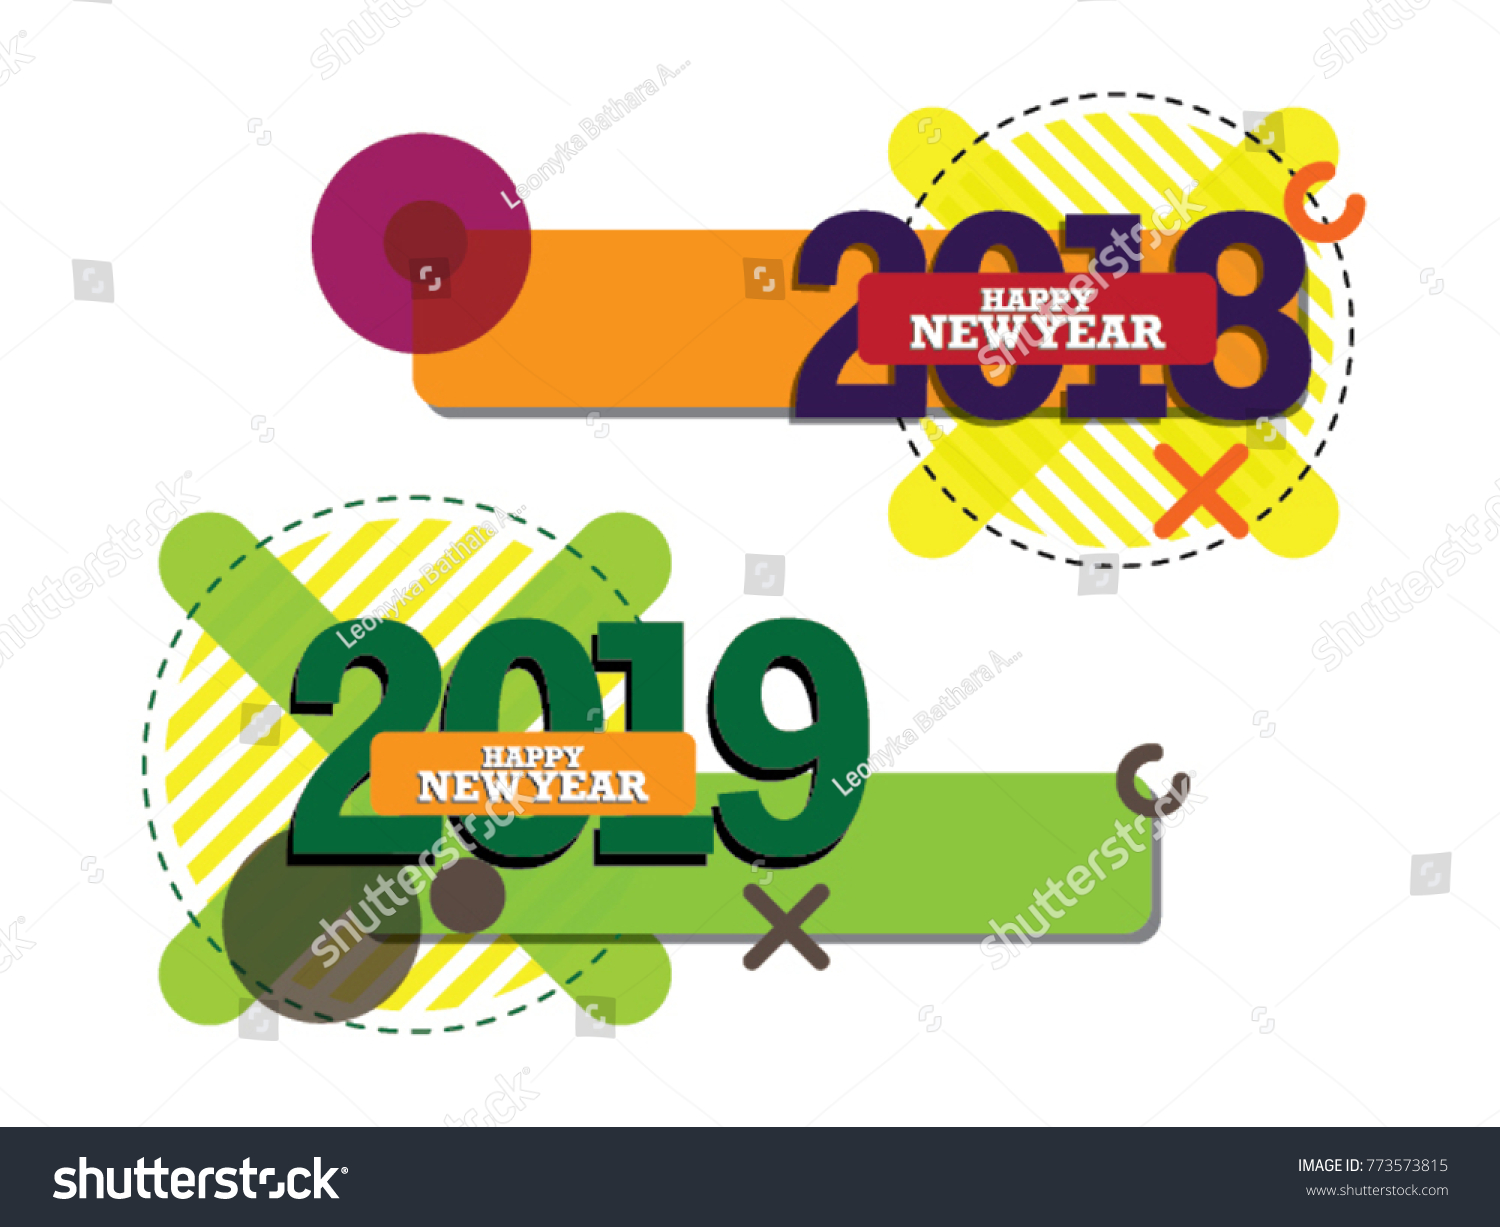 happy new year 2018 2019 card text design